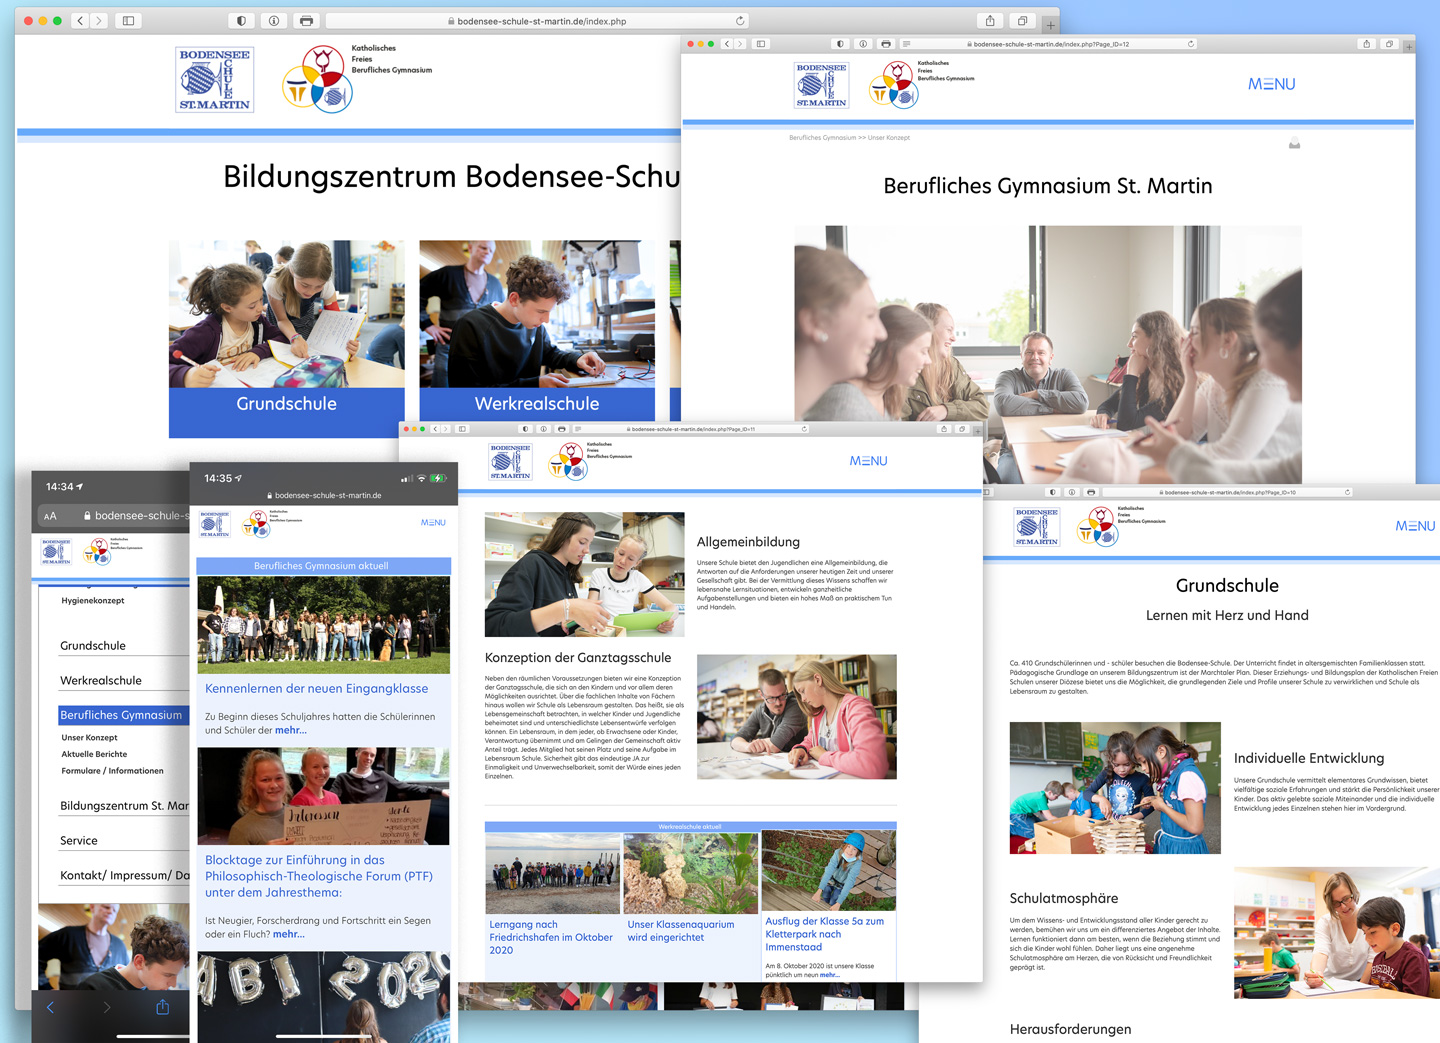 Bild:Screenshot: Website der Bodensee-Schule St. Martin